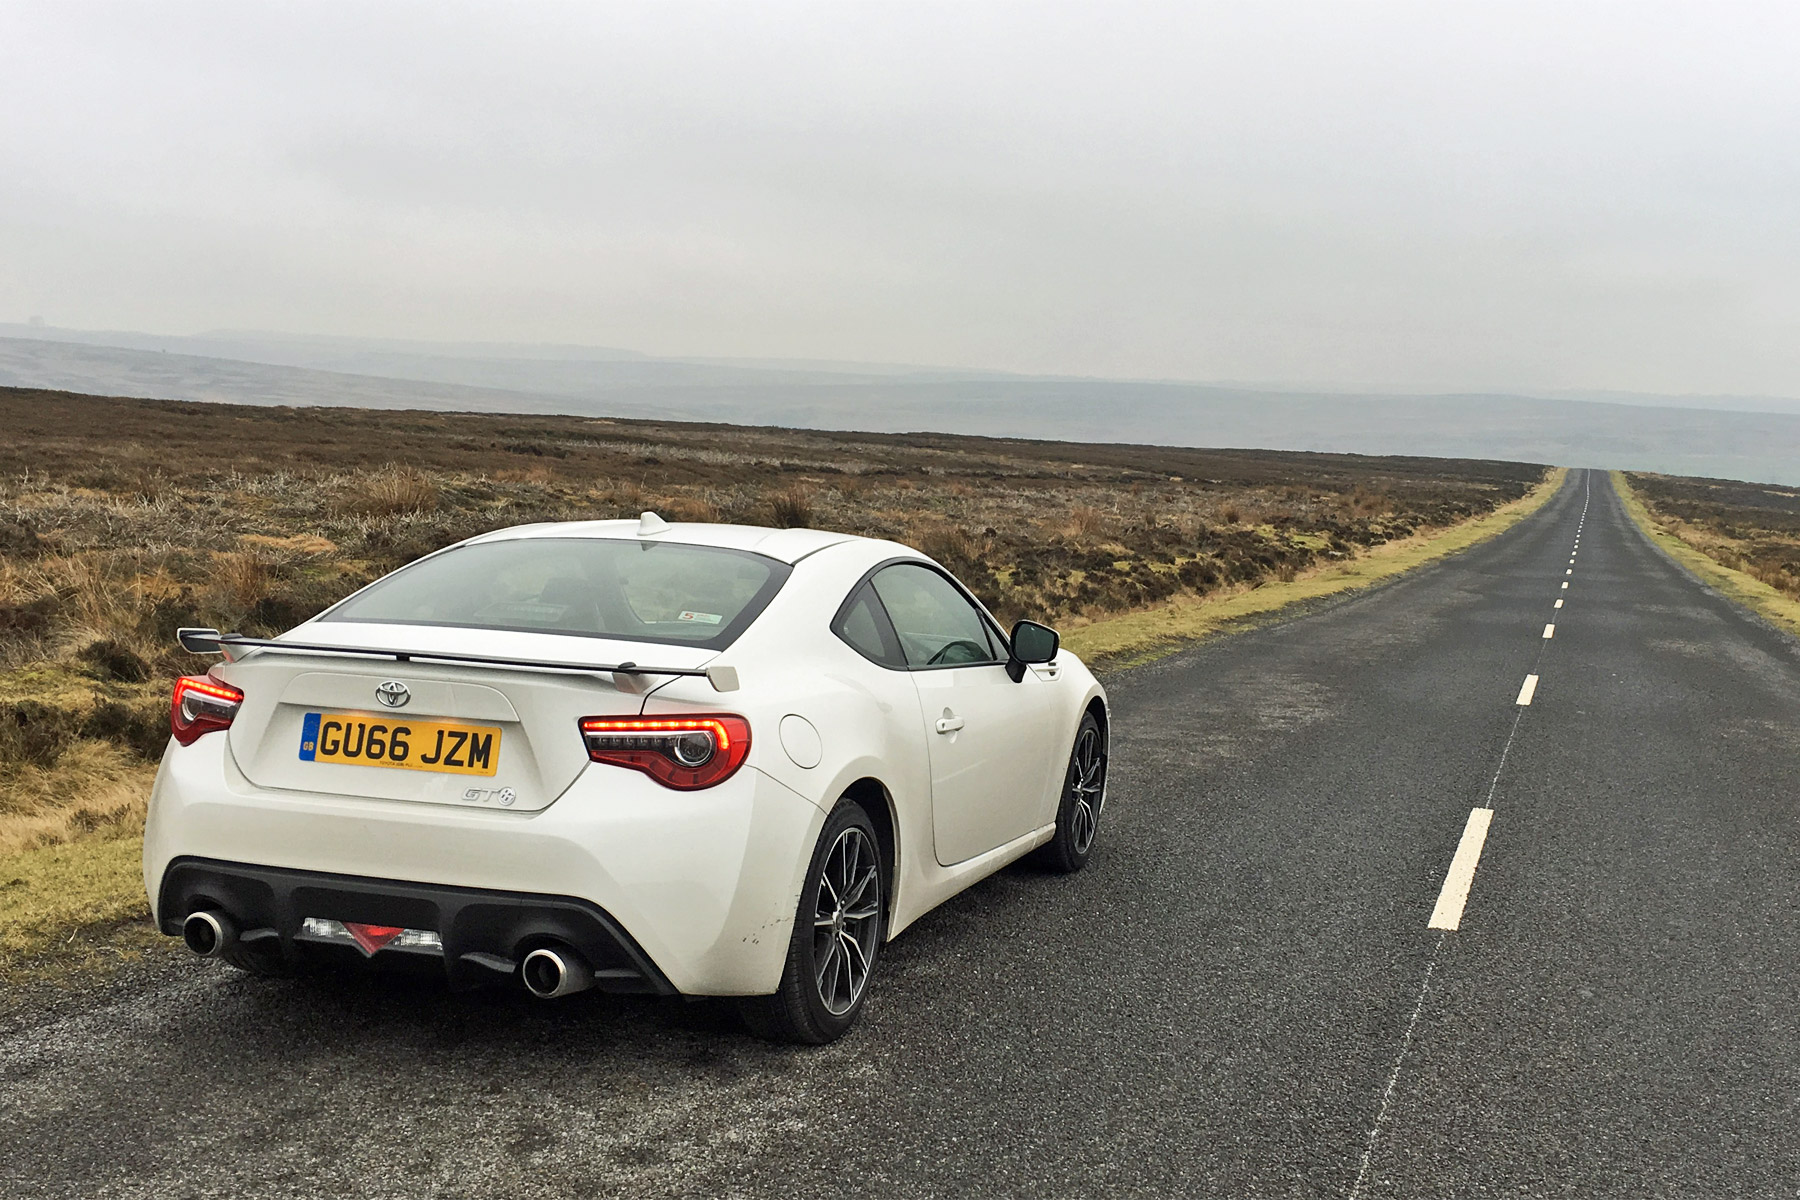 We took the Toyota GT86 on a road trip to find out why no one buys it